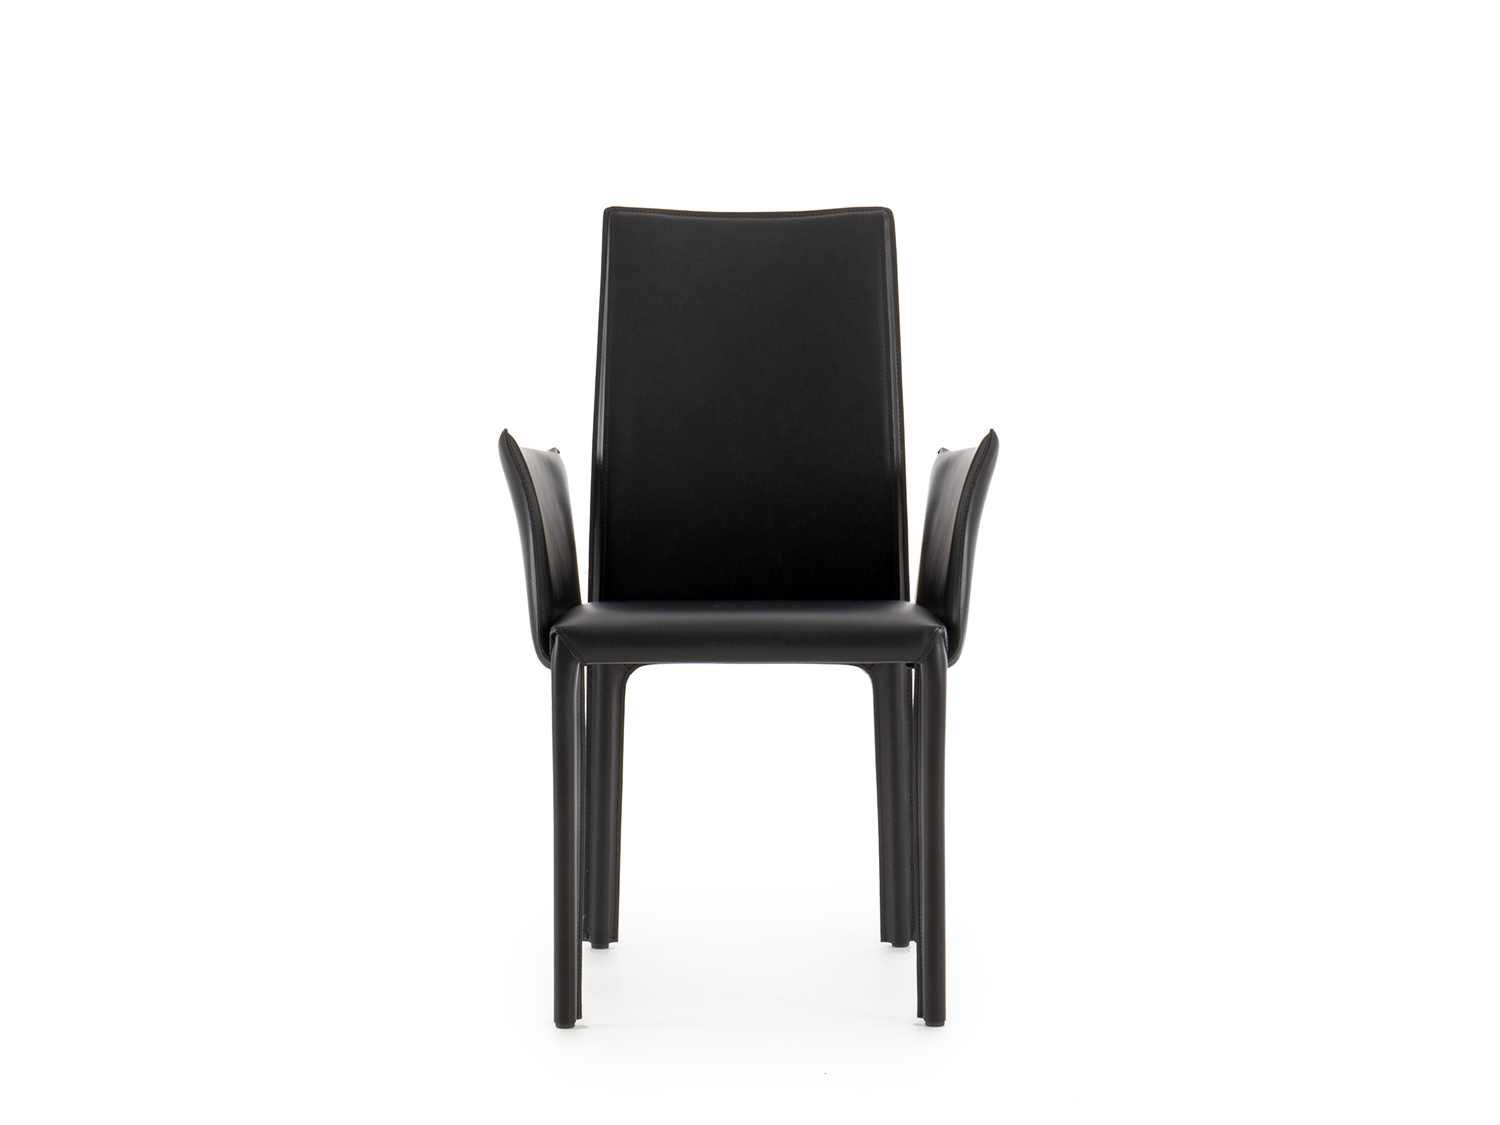 The  Annabeth modern dining chair  with visible stitches, upholstered in hide-leather.